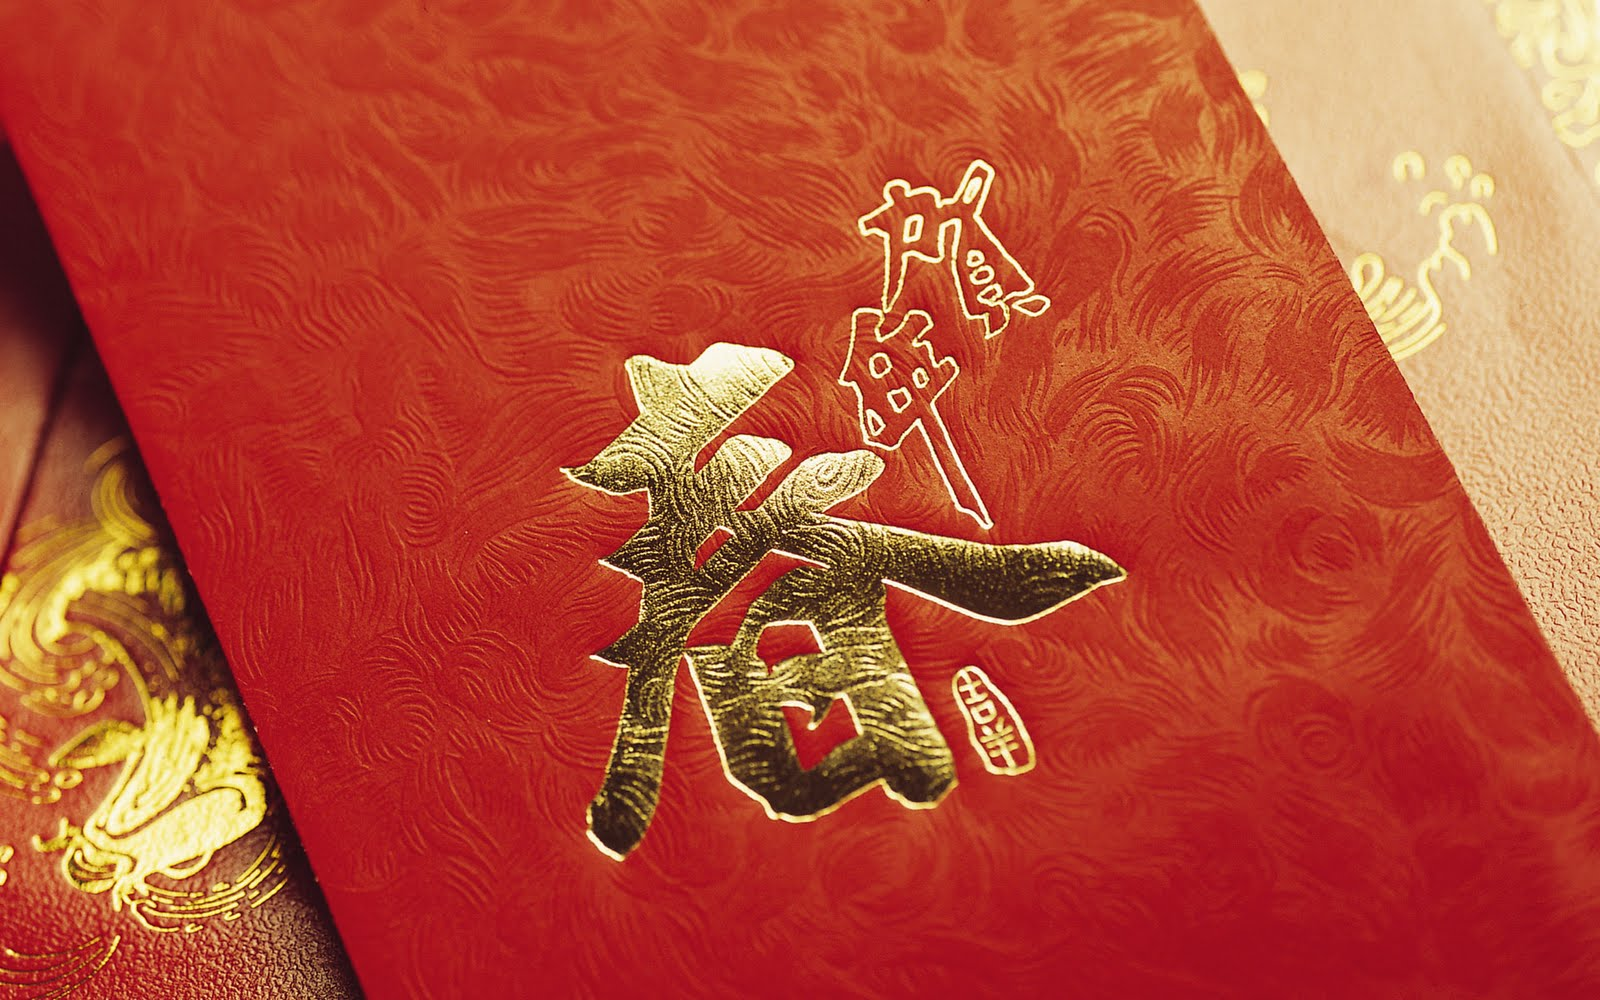 happy chinese new year 2015 image full HD wallpaper Wallpaper with 1600x1000